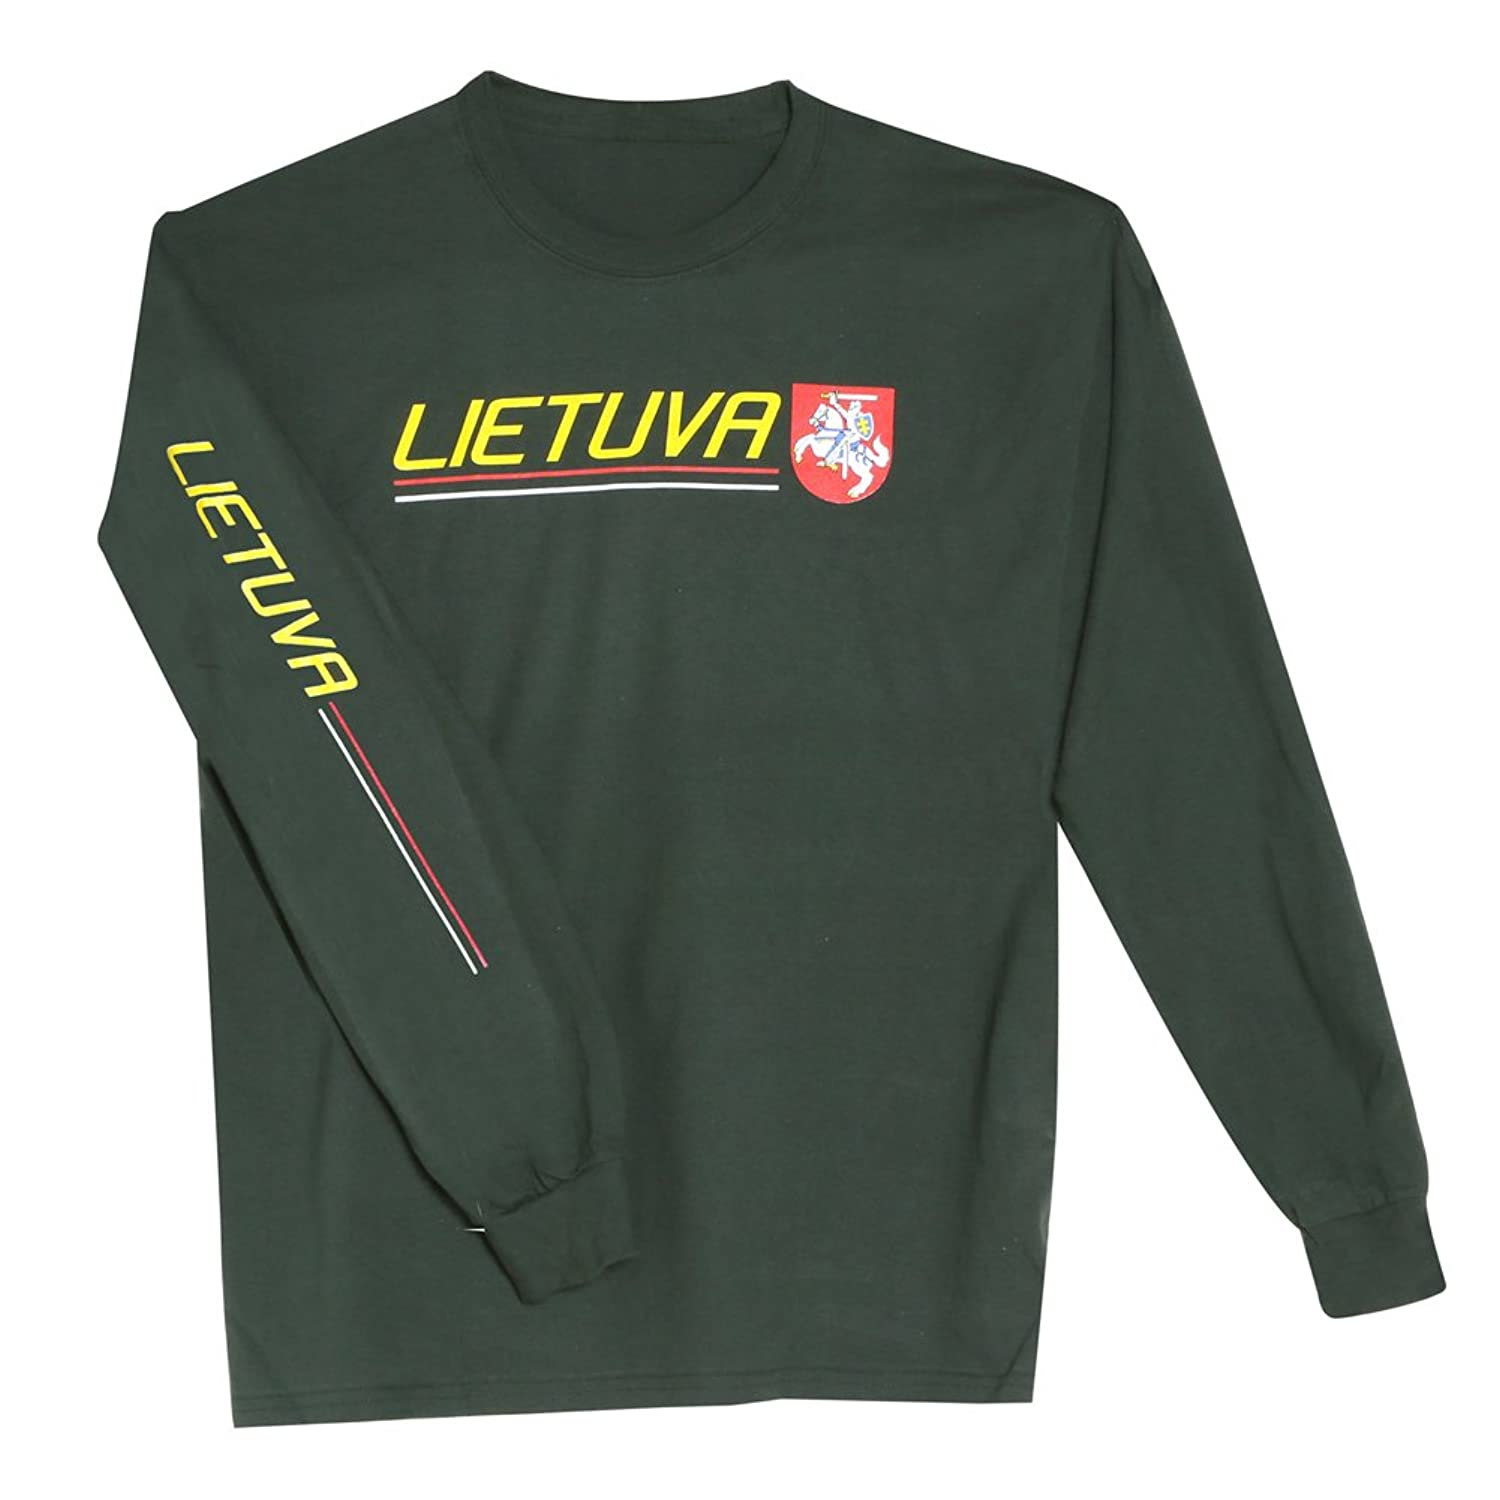 Unisex-Adult International Pride Long Sleeve Shirt - Lietuva (Lithuania) handbook of international economics 3